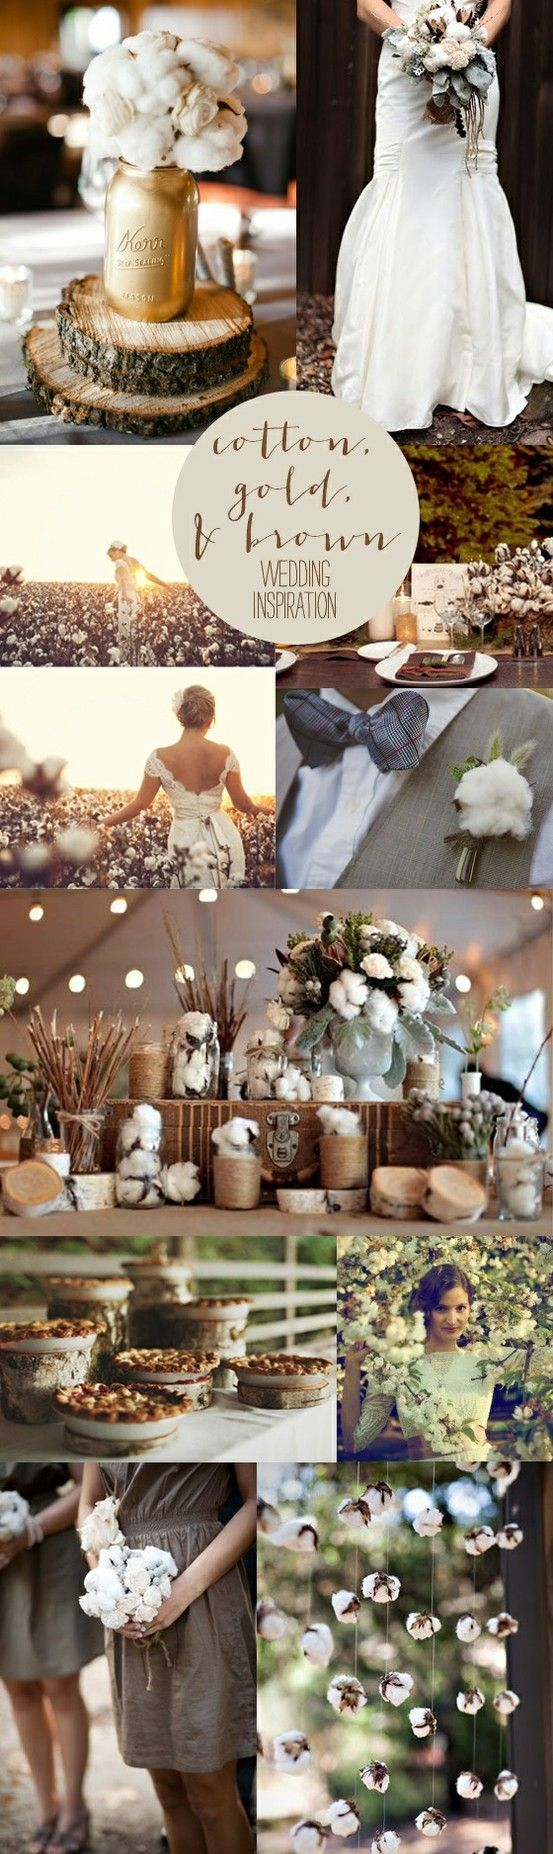 Gold And Brown Wedding Inspiration Elegant Rustic Country Ideas Barn Weddings Pinterest C